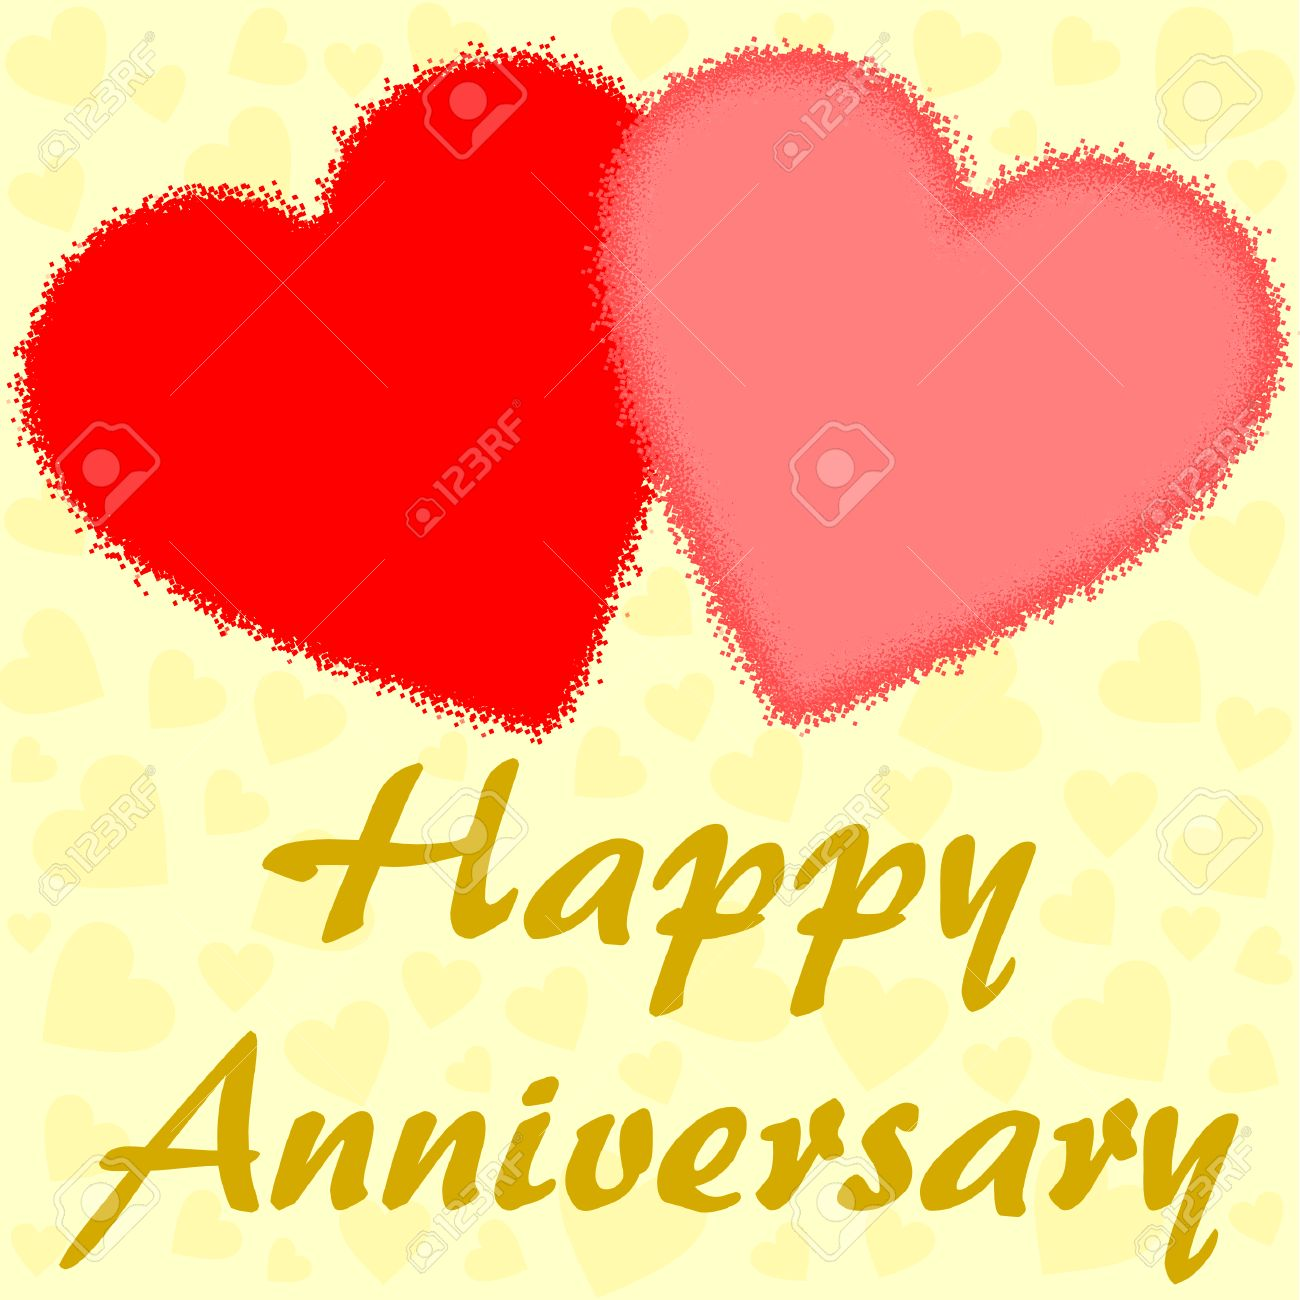 Happy Anniversary wishes with two big red hearts on yellow background